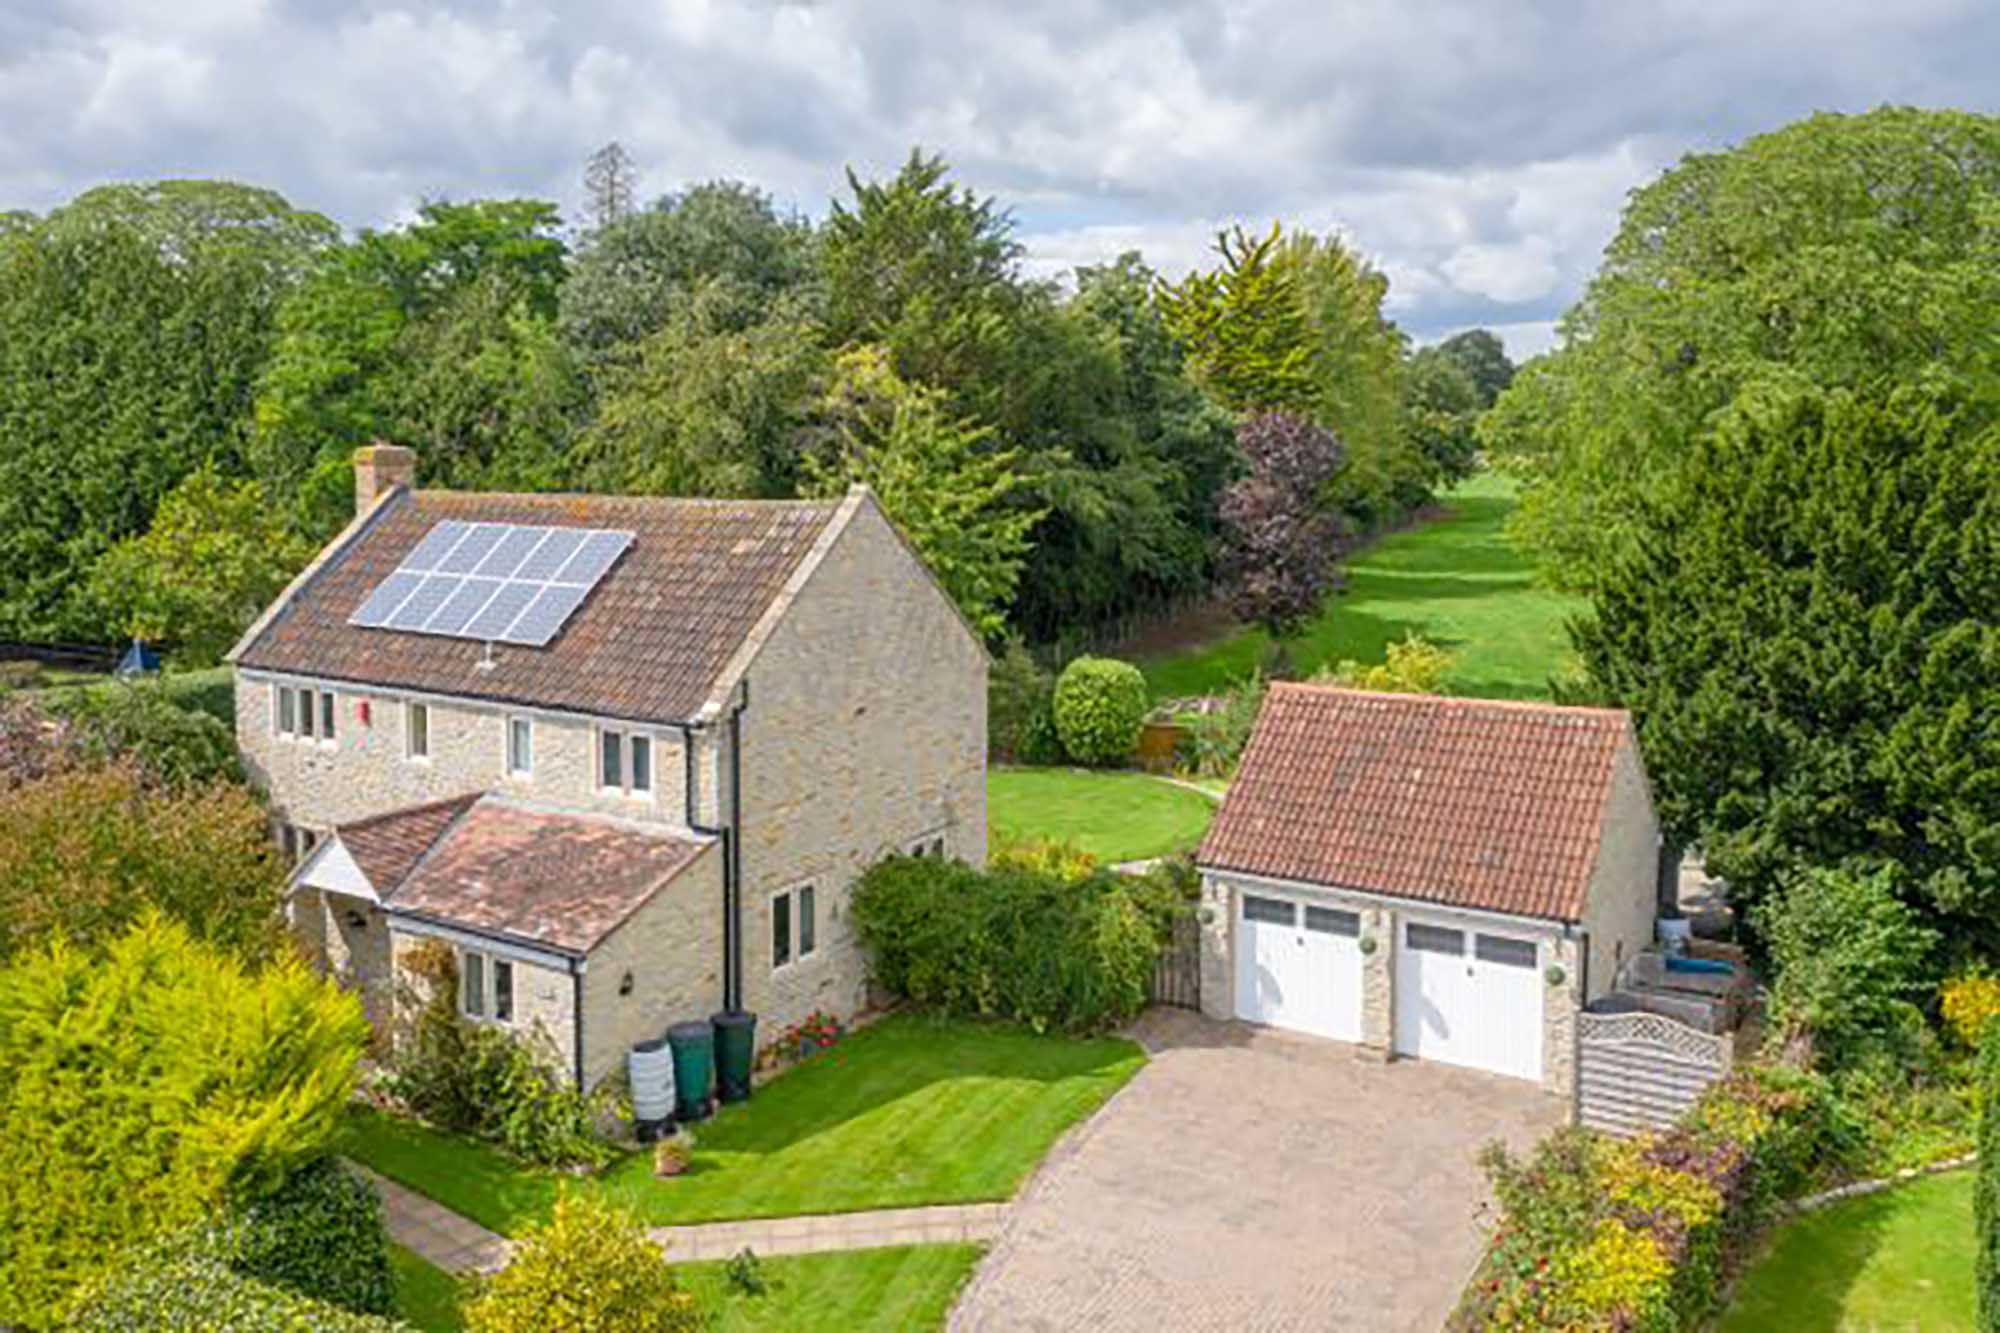 Great location in desirable village